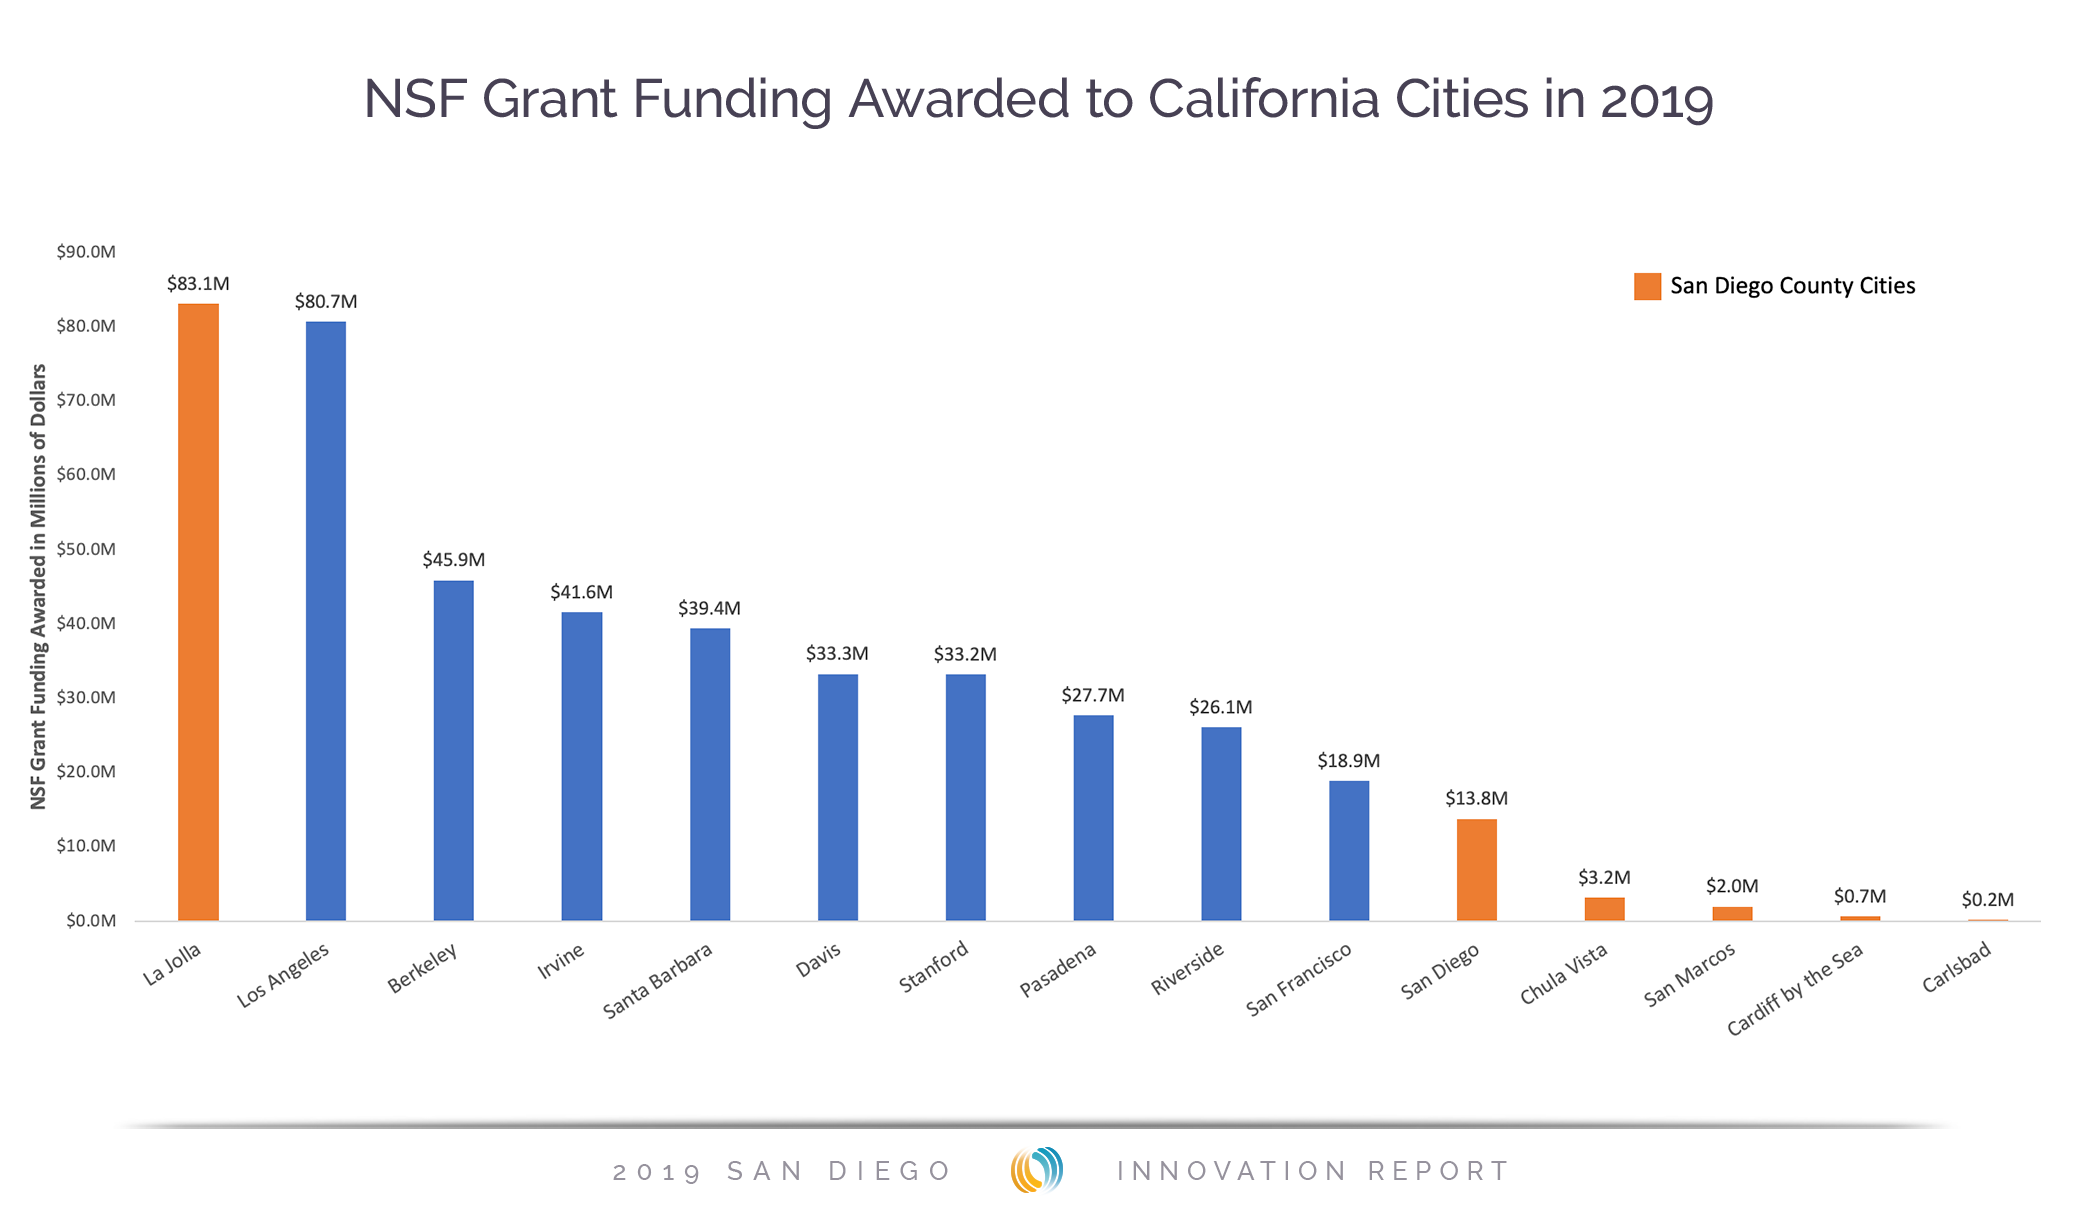 NSF Grant Funding Awarded to California Cities in 2019 - San Diego Innovation Report